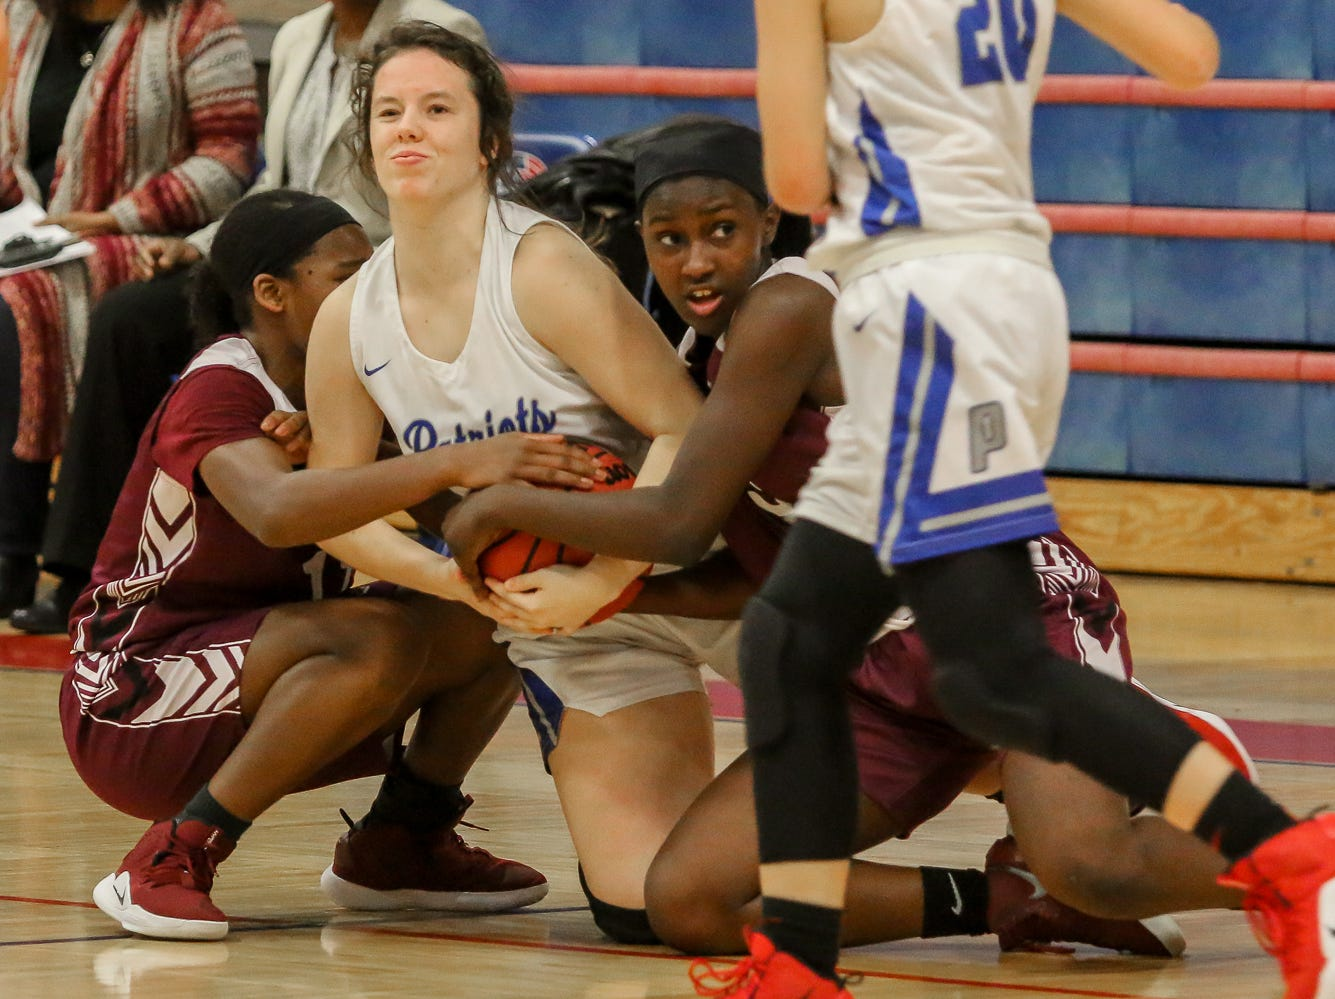 Pace's Paiten Rivera, center, and PHS' Nala Baker, left, and Shy'Kera Miller battle for control of the ball on the floor at Pace High School on Friday, January 4, 2019.